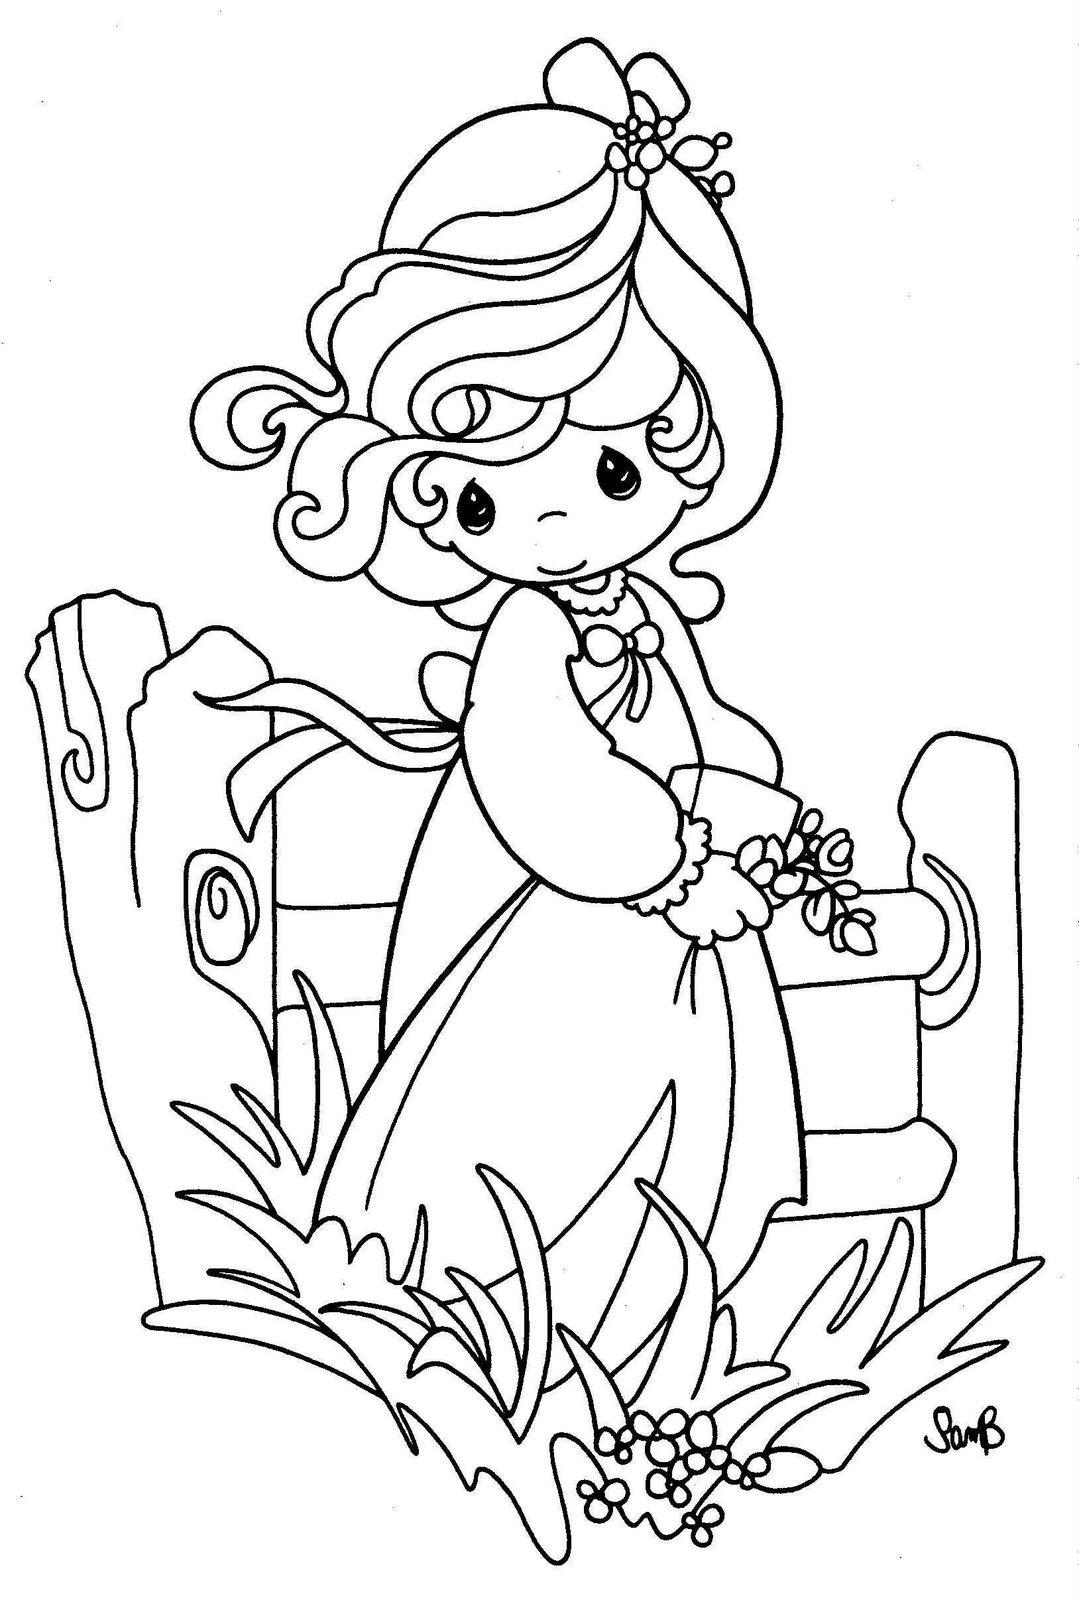 precious moments coloring pages printable precious moments for love coloring pages gtgt disney moments coloring precious printable pages